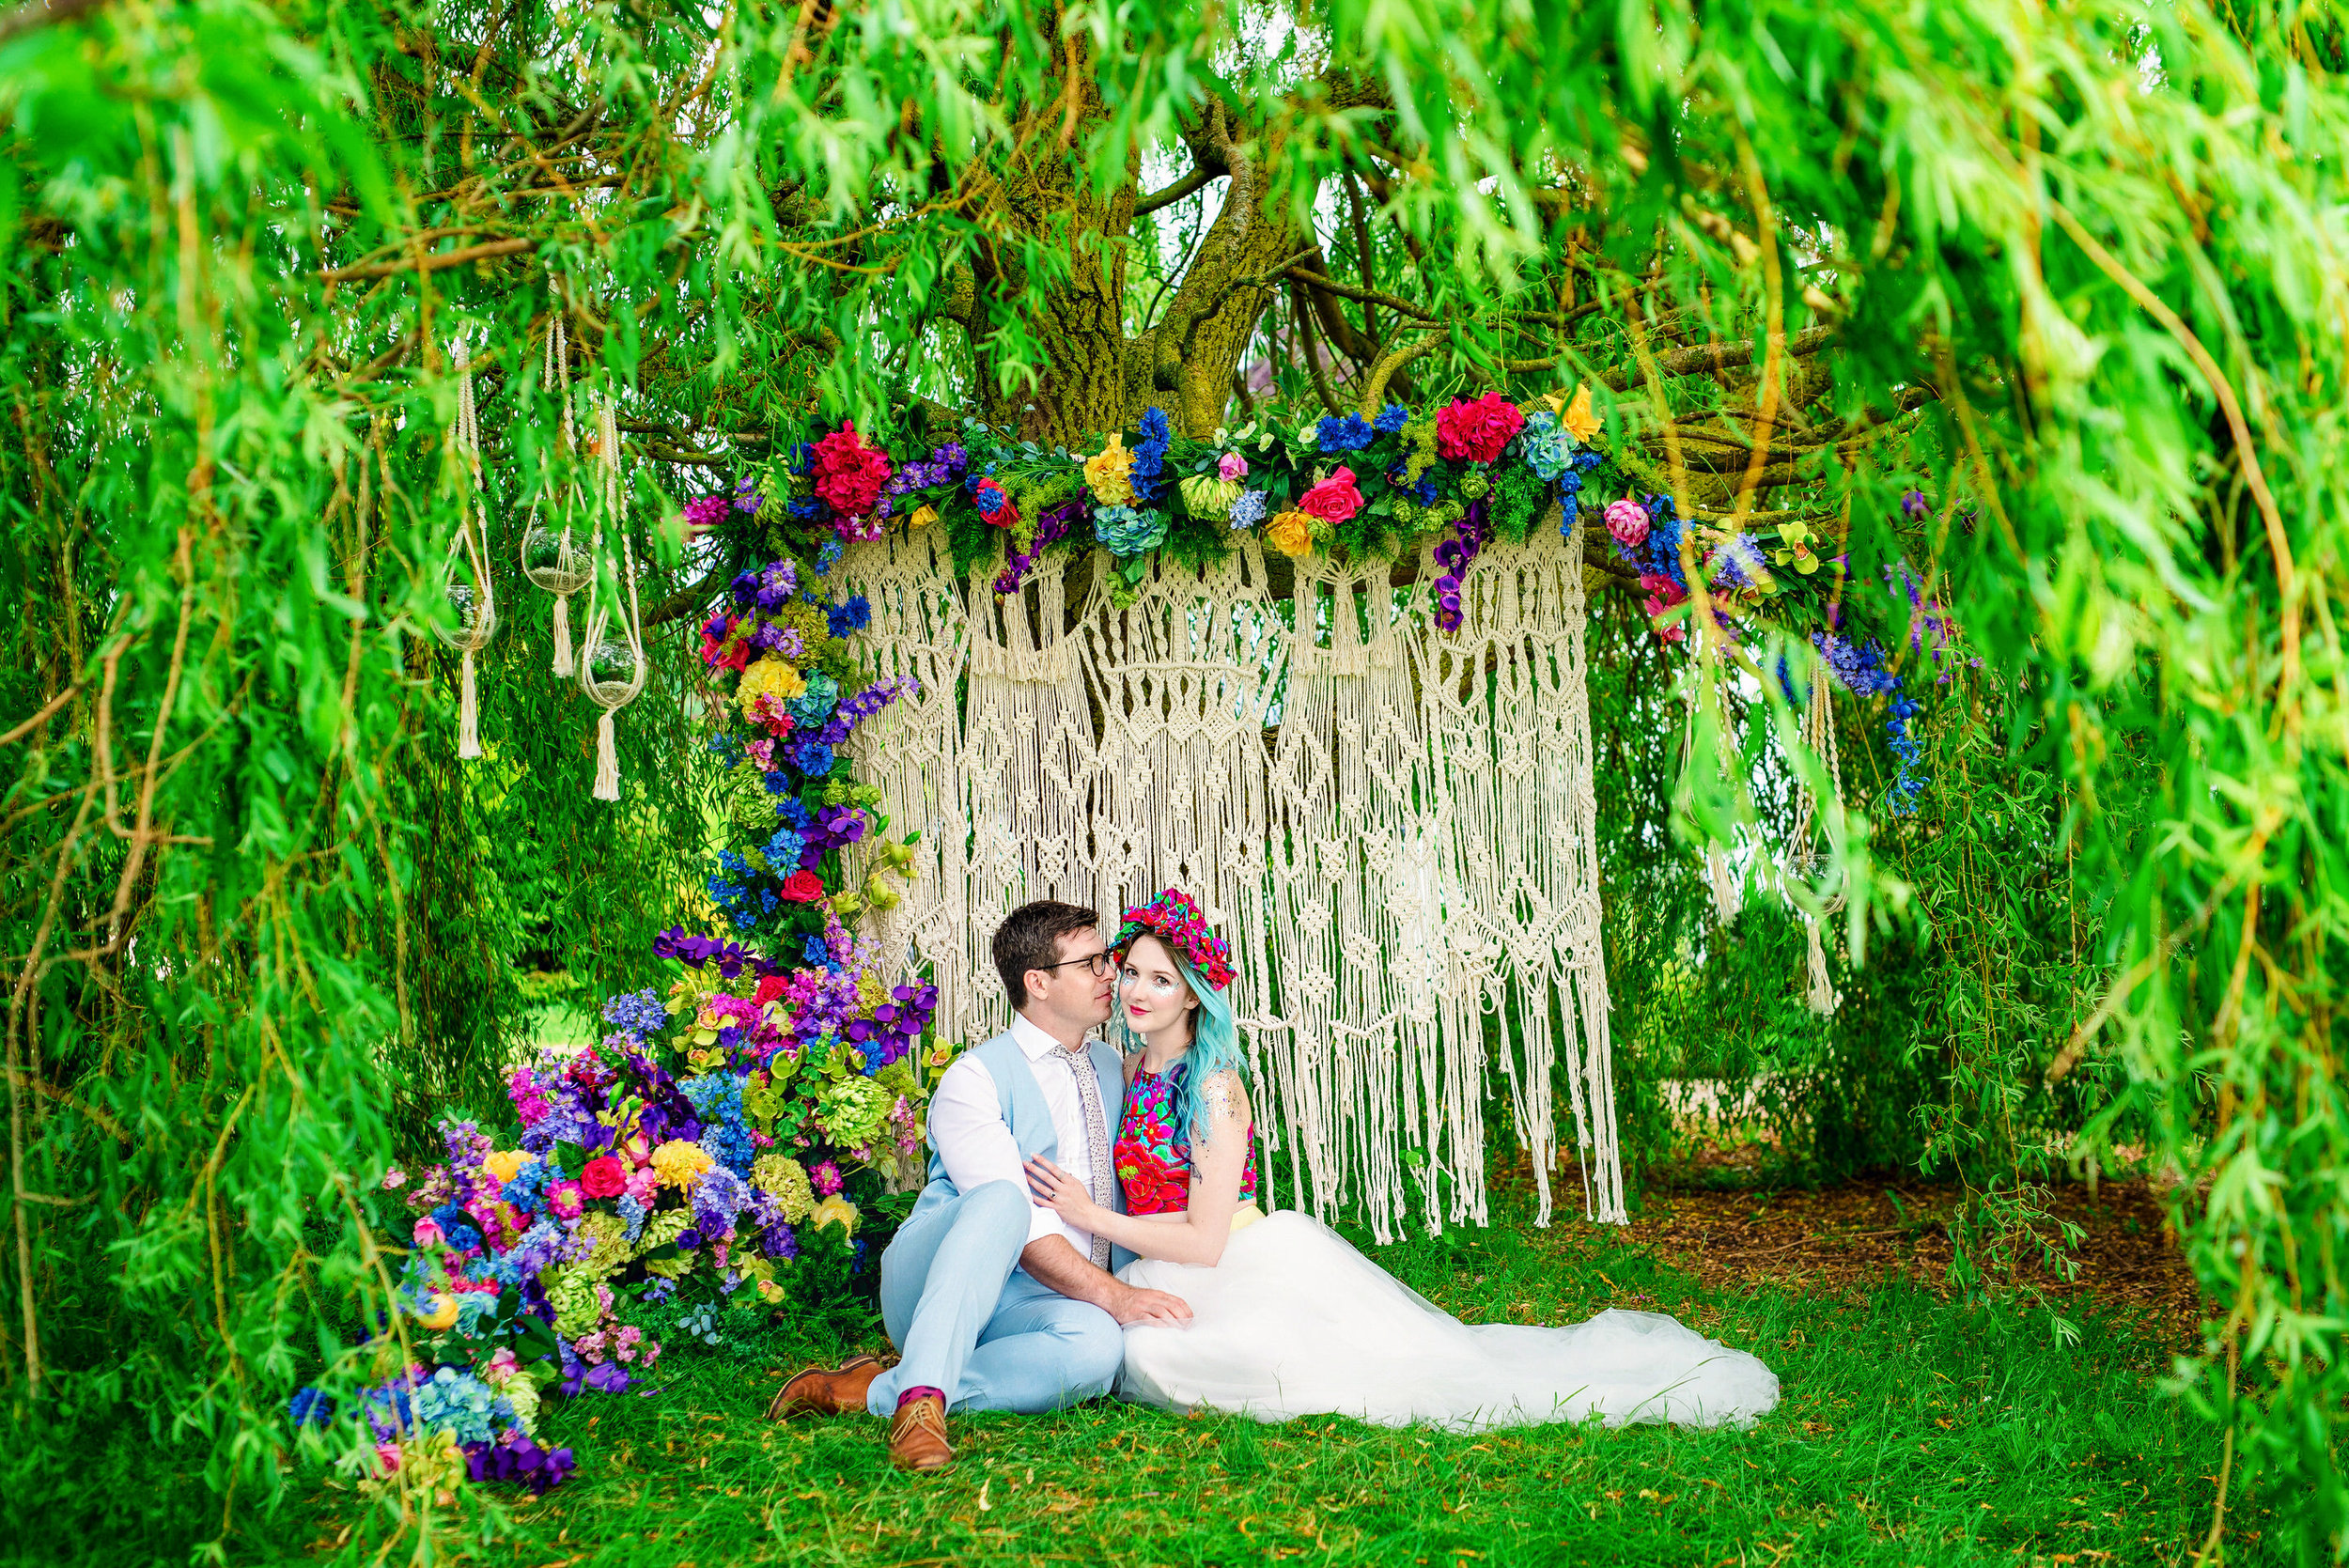 Colourful Wedding Photographer - Photography by Vicki 00004.jpg